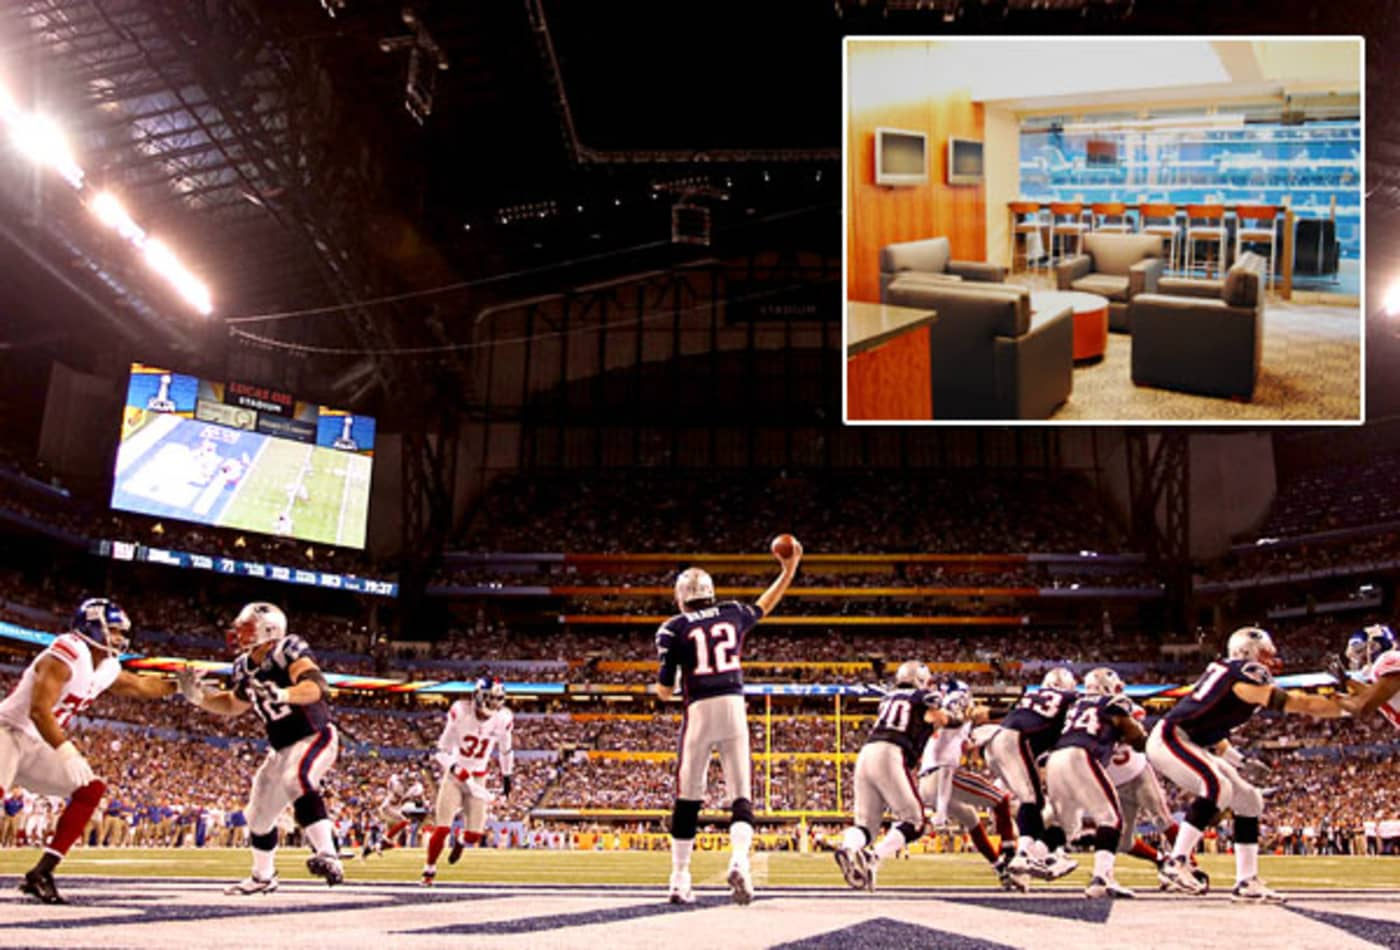 NFL-Super-Bowl-Lucas-Oil-Indianapolis-Most-Expensive-Luxury-Suites-CNBC..jpg